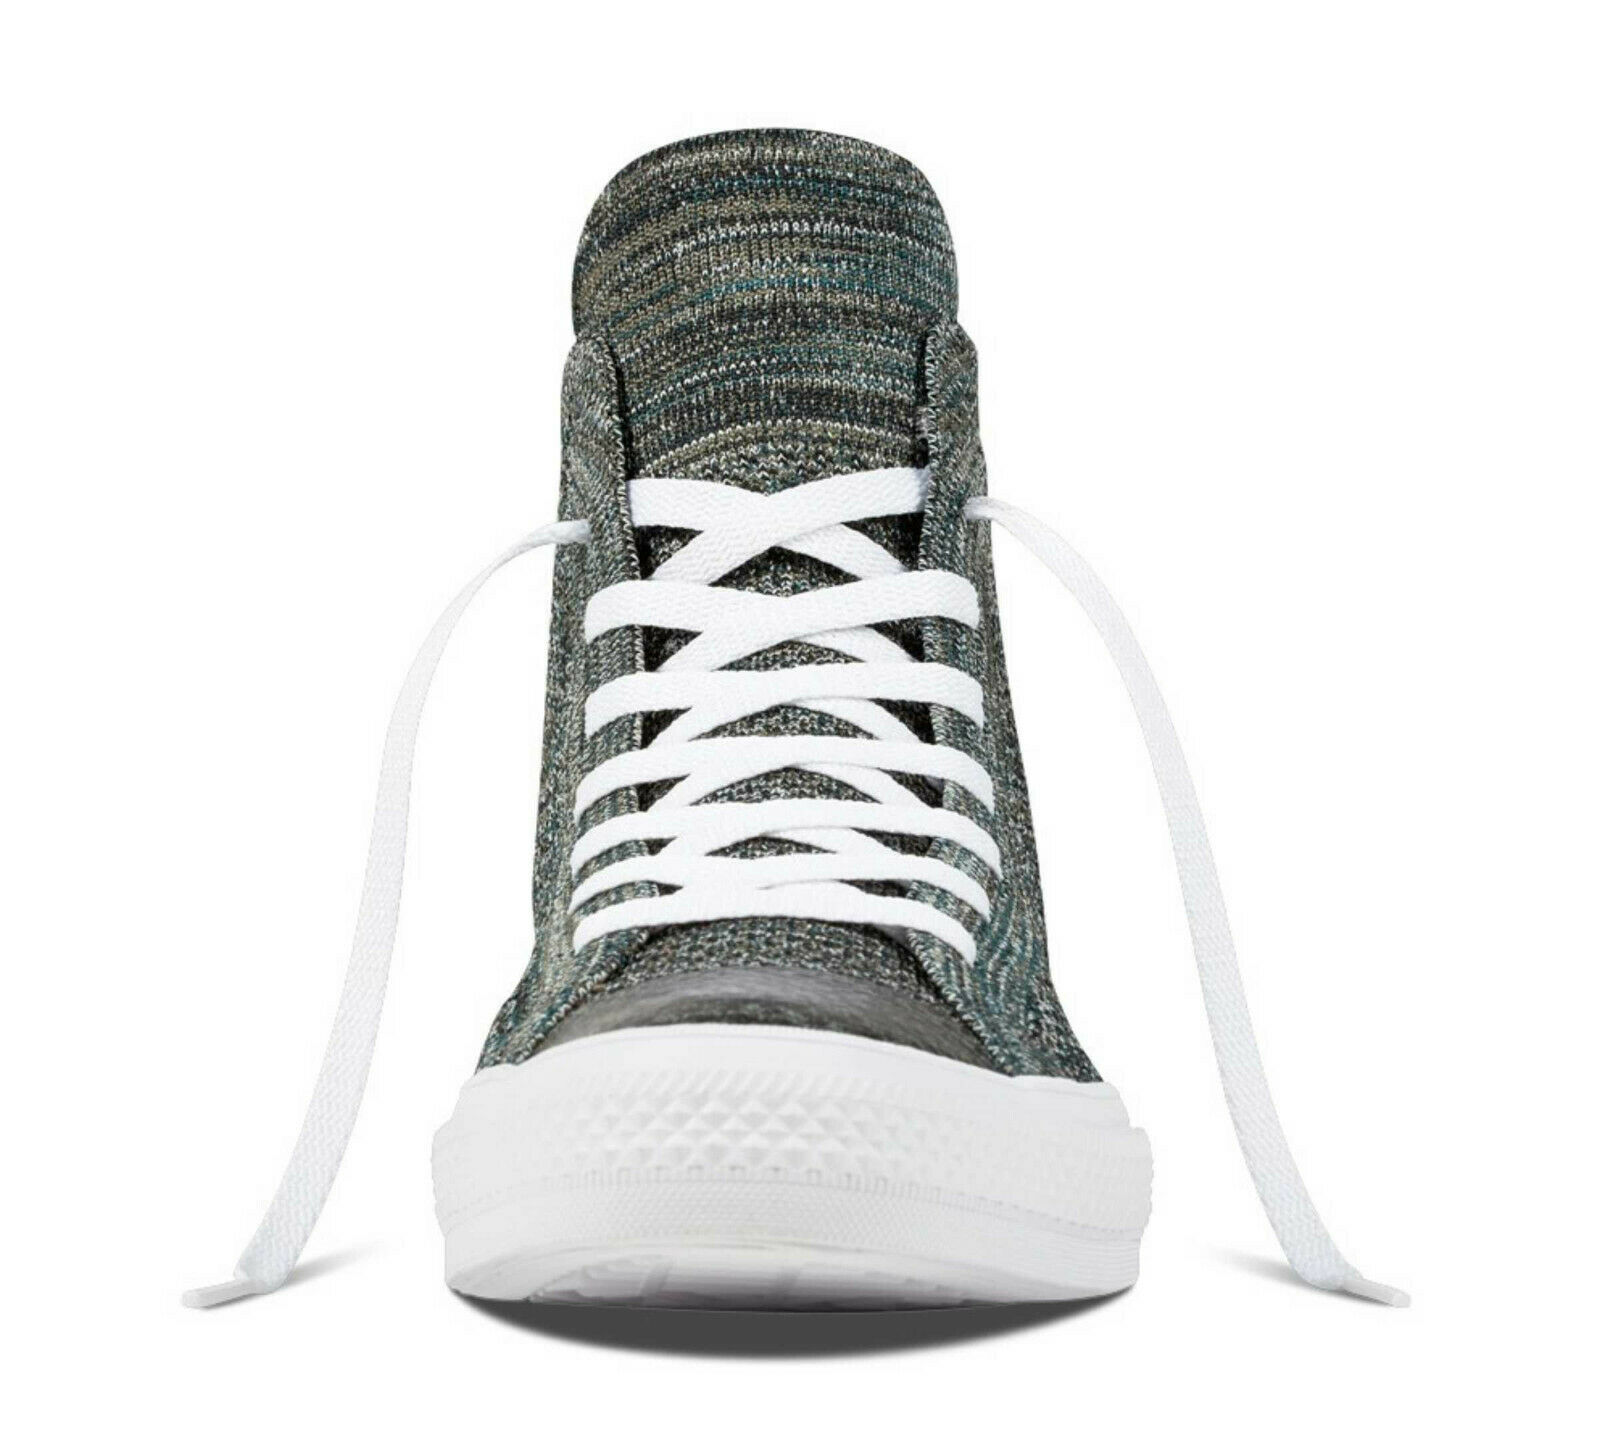 Converse Mens Chuck Taylor All Star Hi Flyknit 157509C Teal/White Size 10 image 3